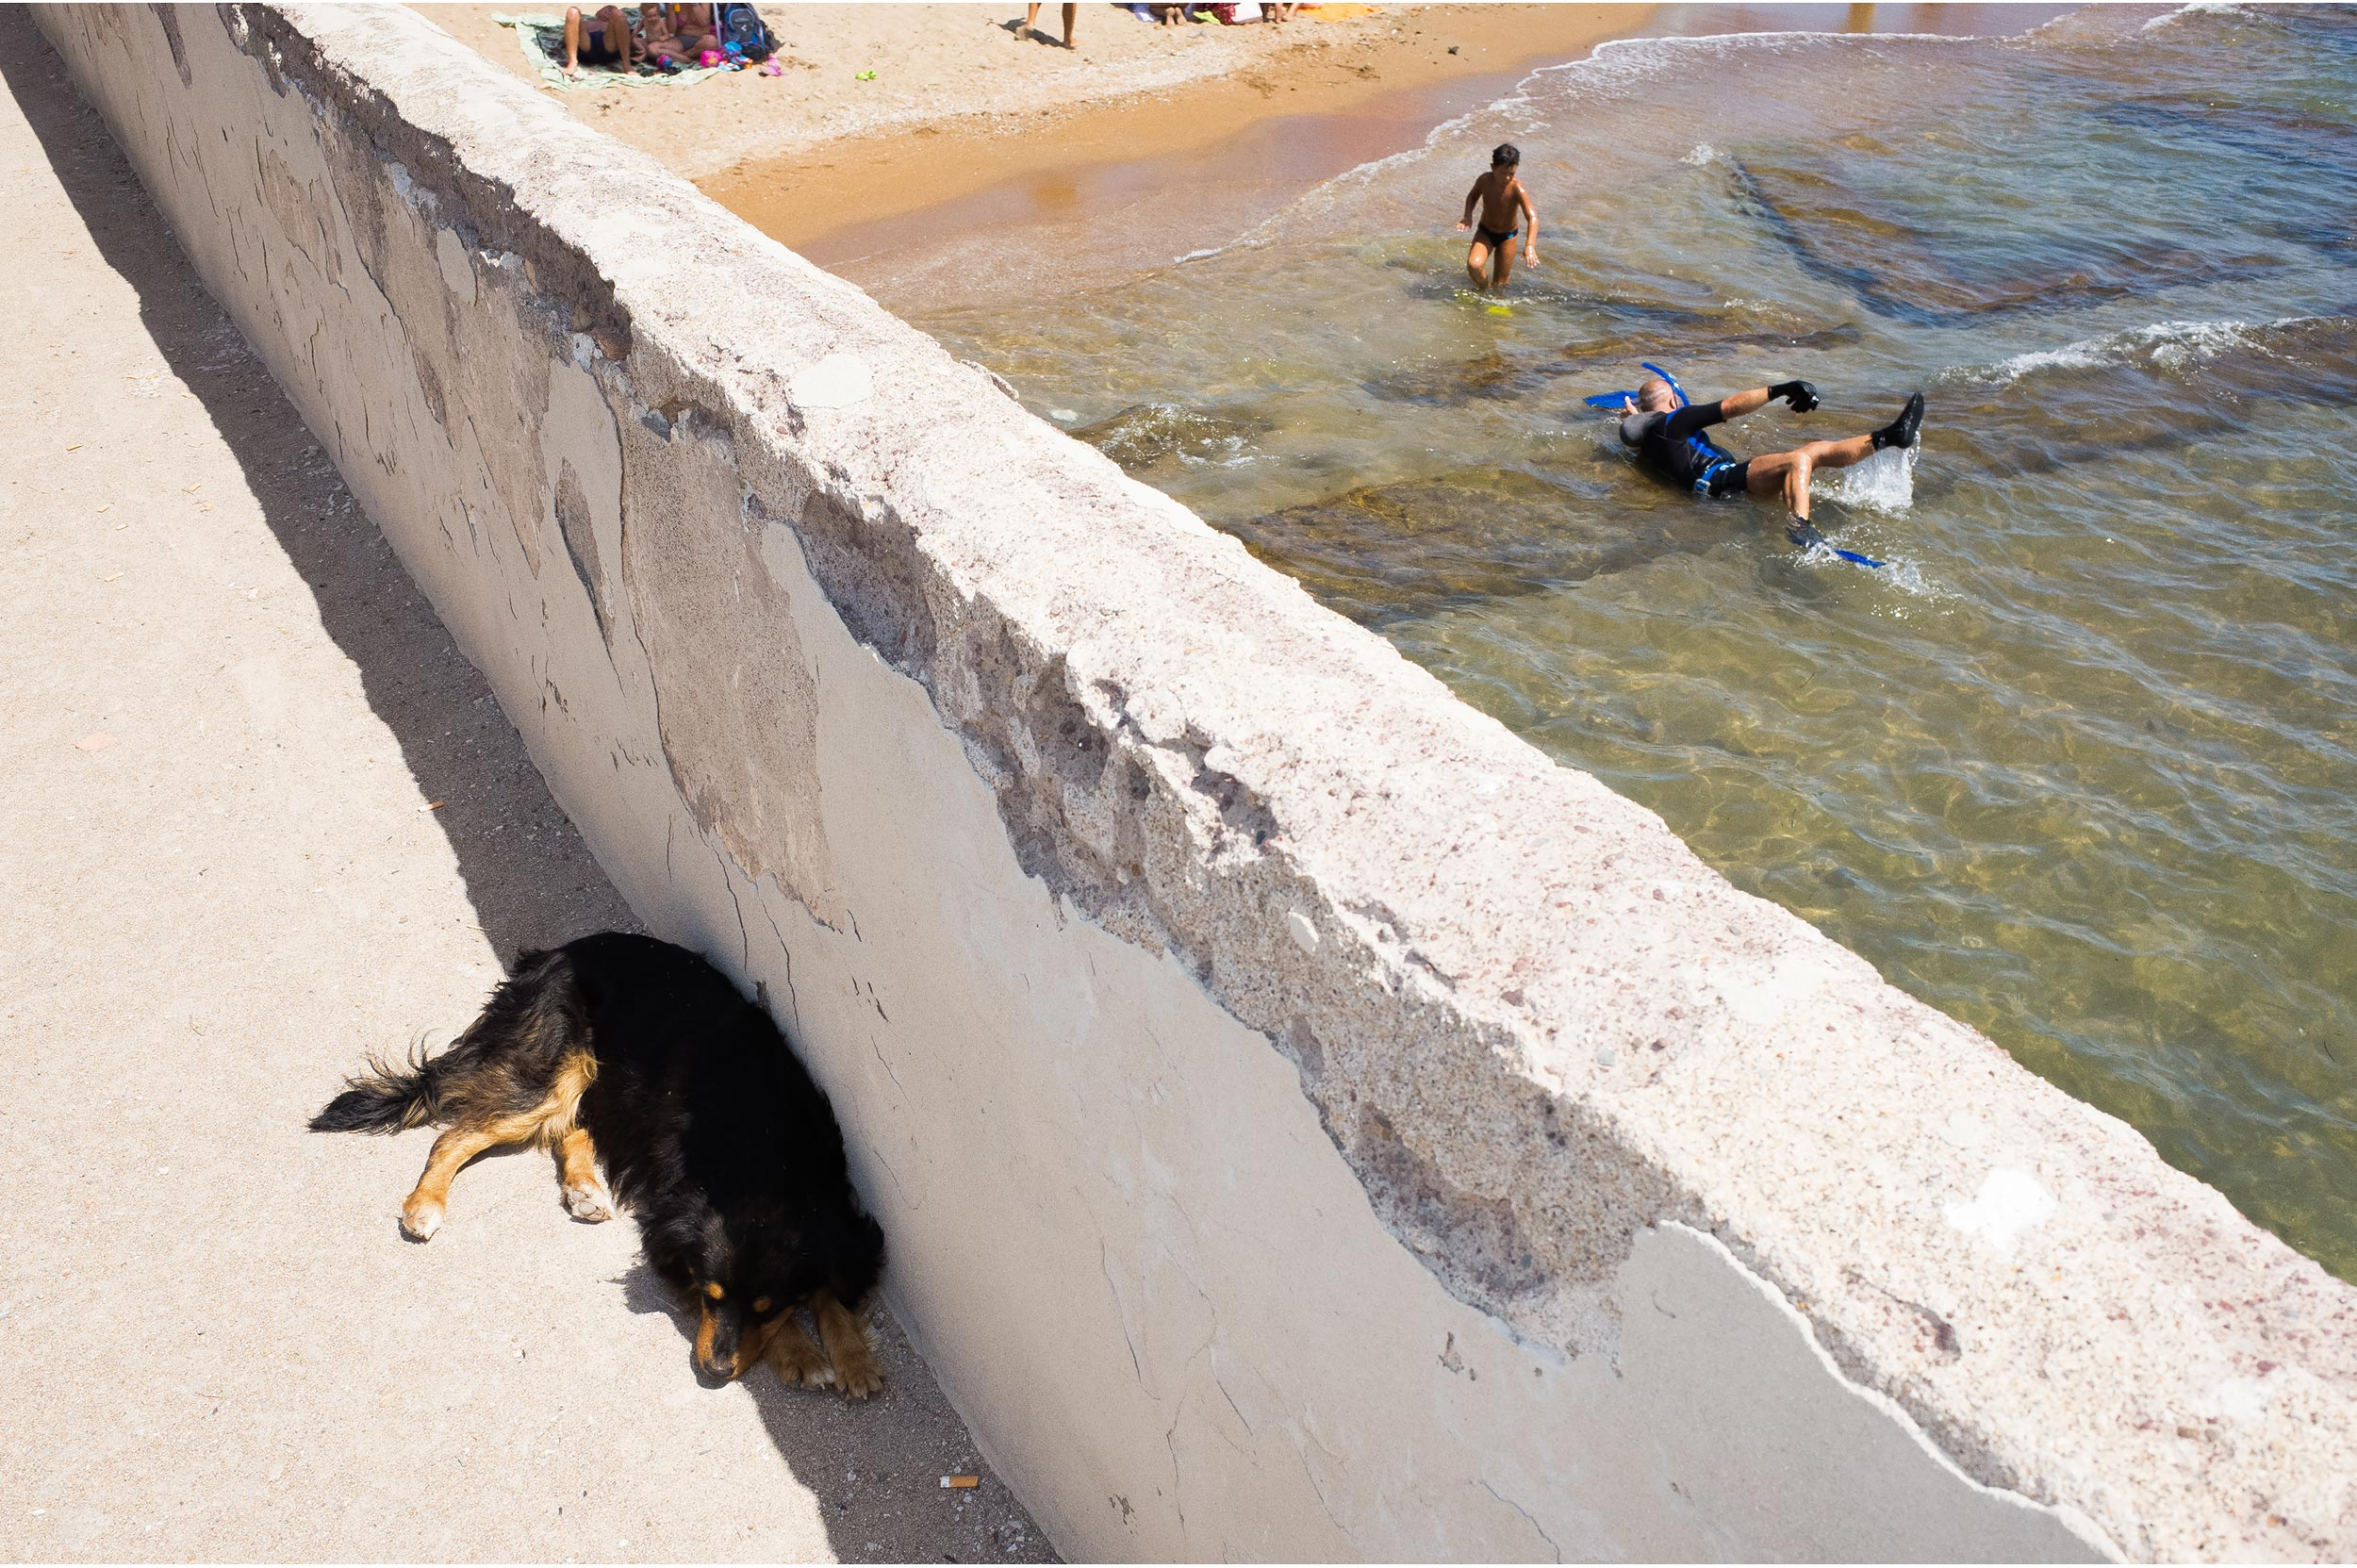 A dog sleeps seeking the shadow in Summer, while a man struggles trying to have fun in the water.